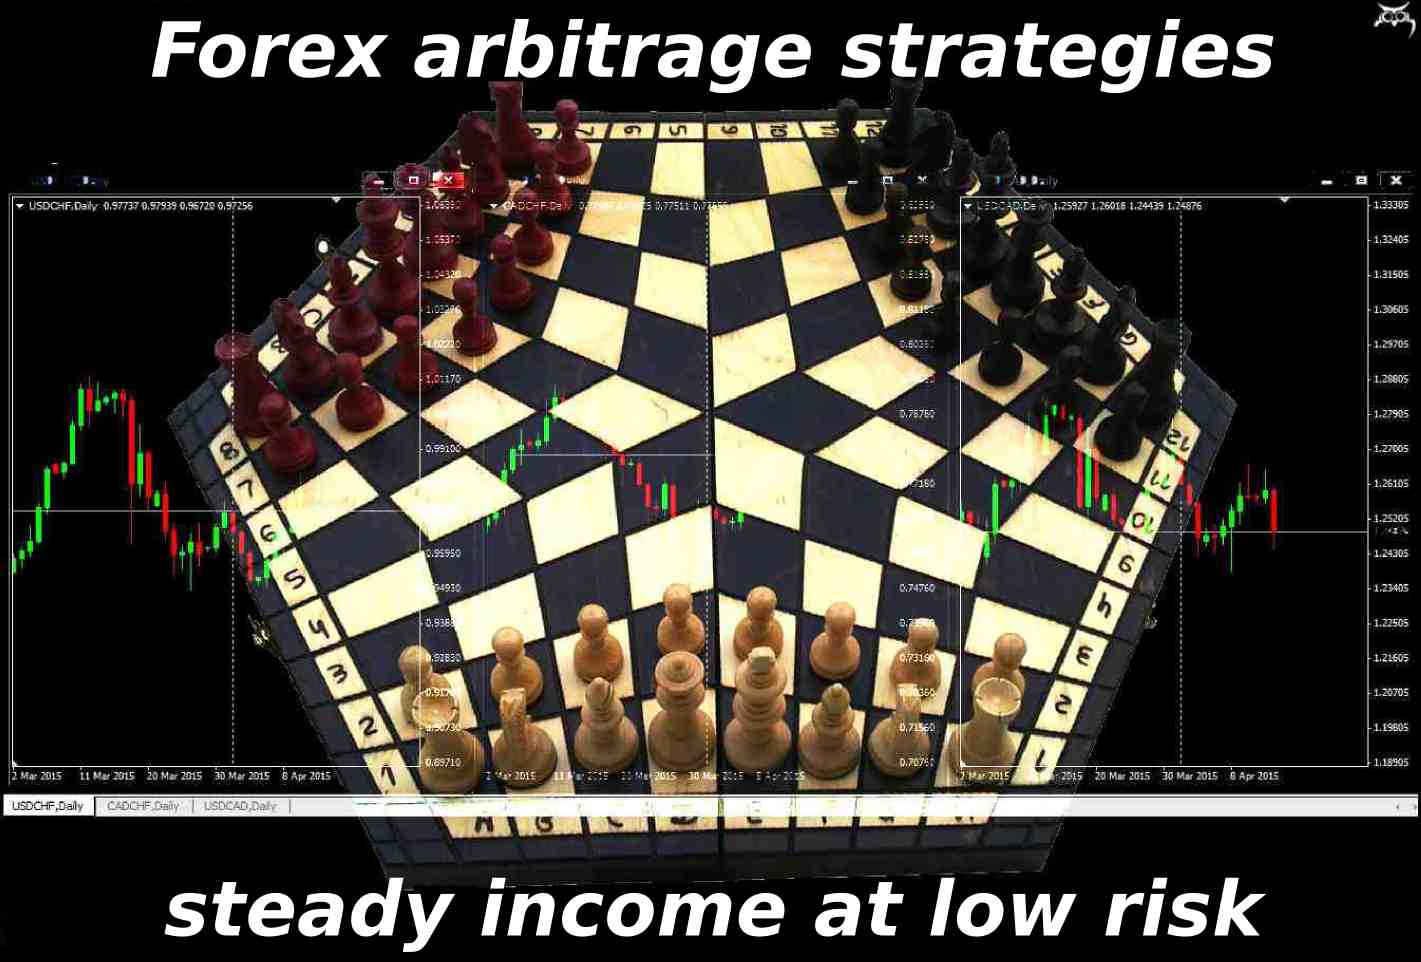 Arbitrage strategies using options